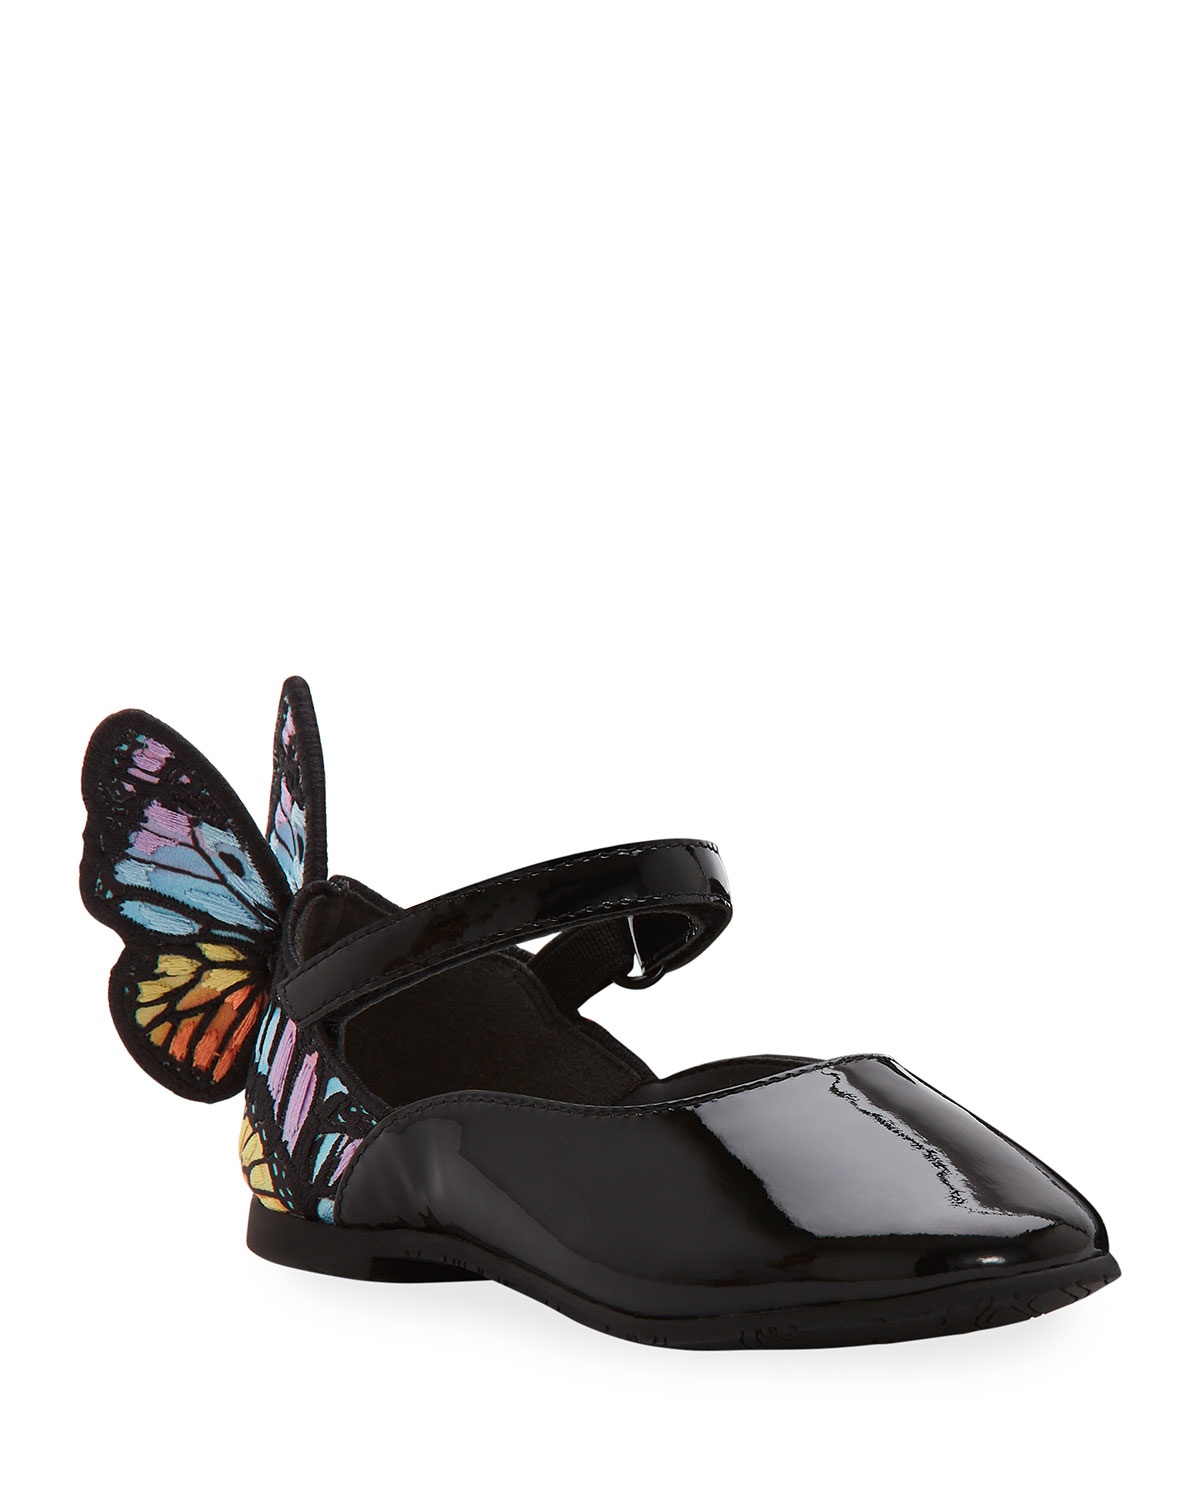 Sophia Webster Flats CHIARA PATENT LEATHER EMBROIDERED BUTTERFLY-WING FLATS, TODDLER